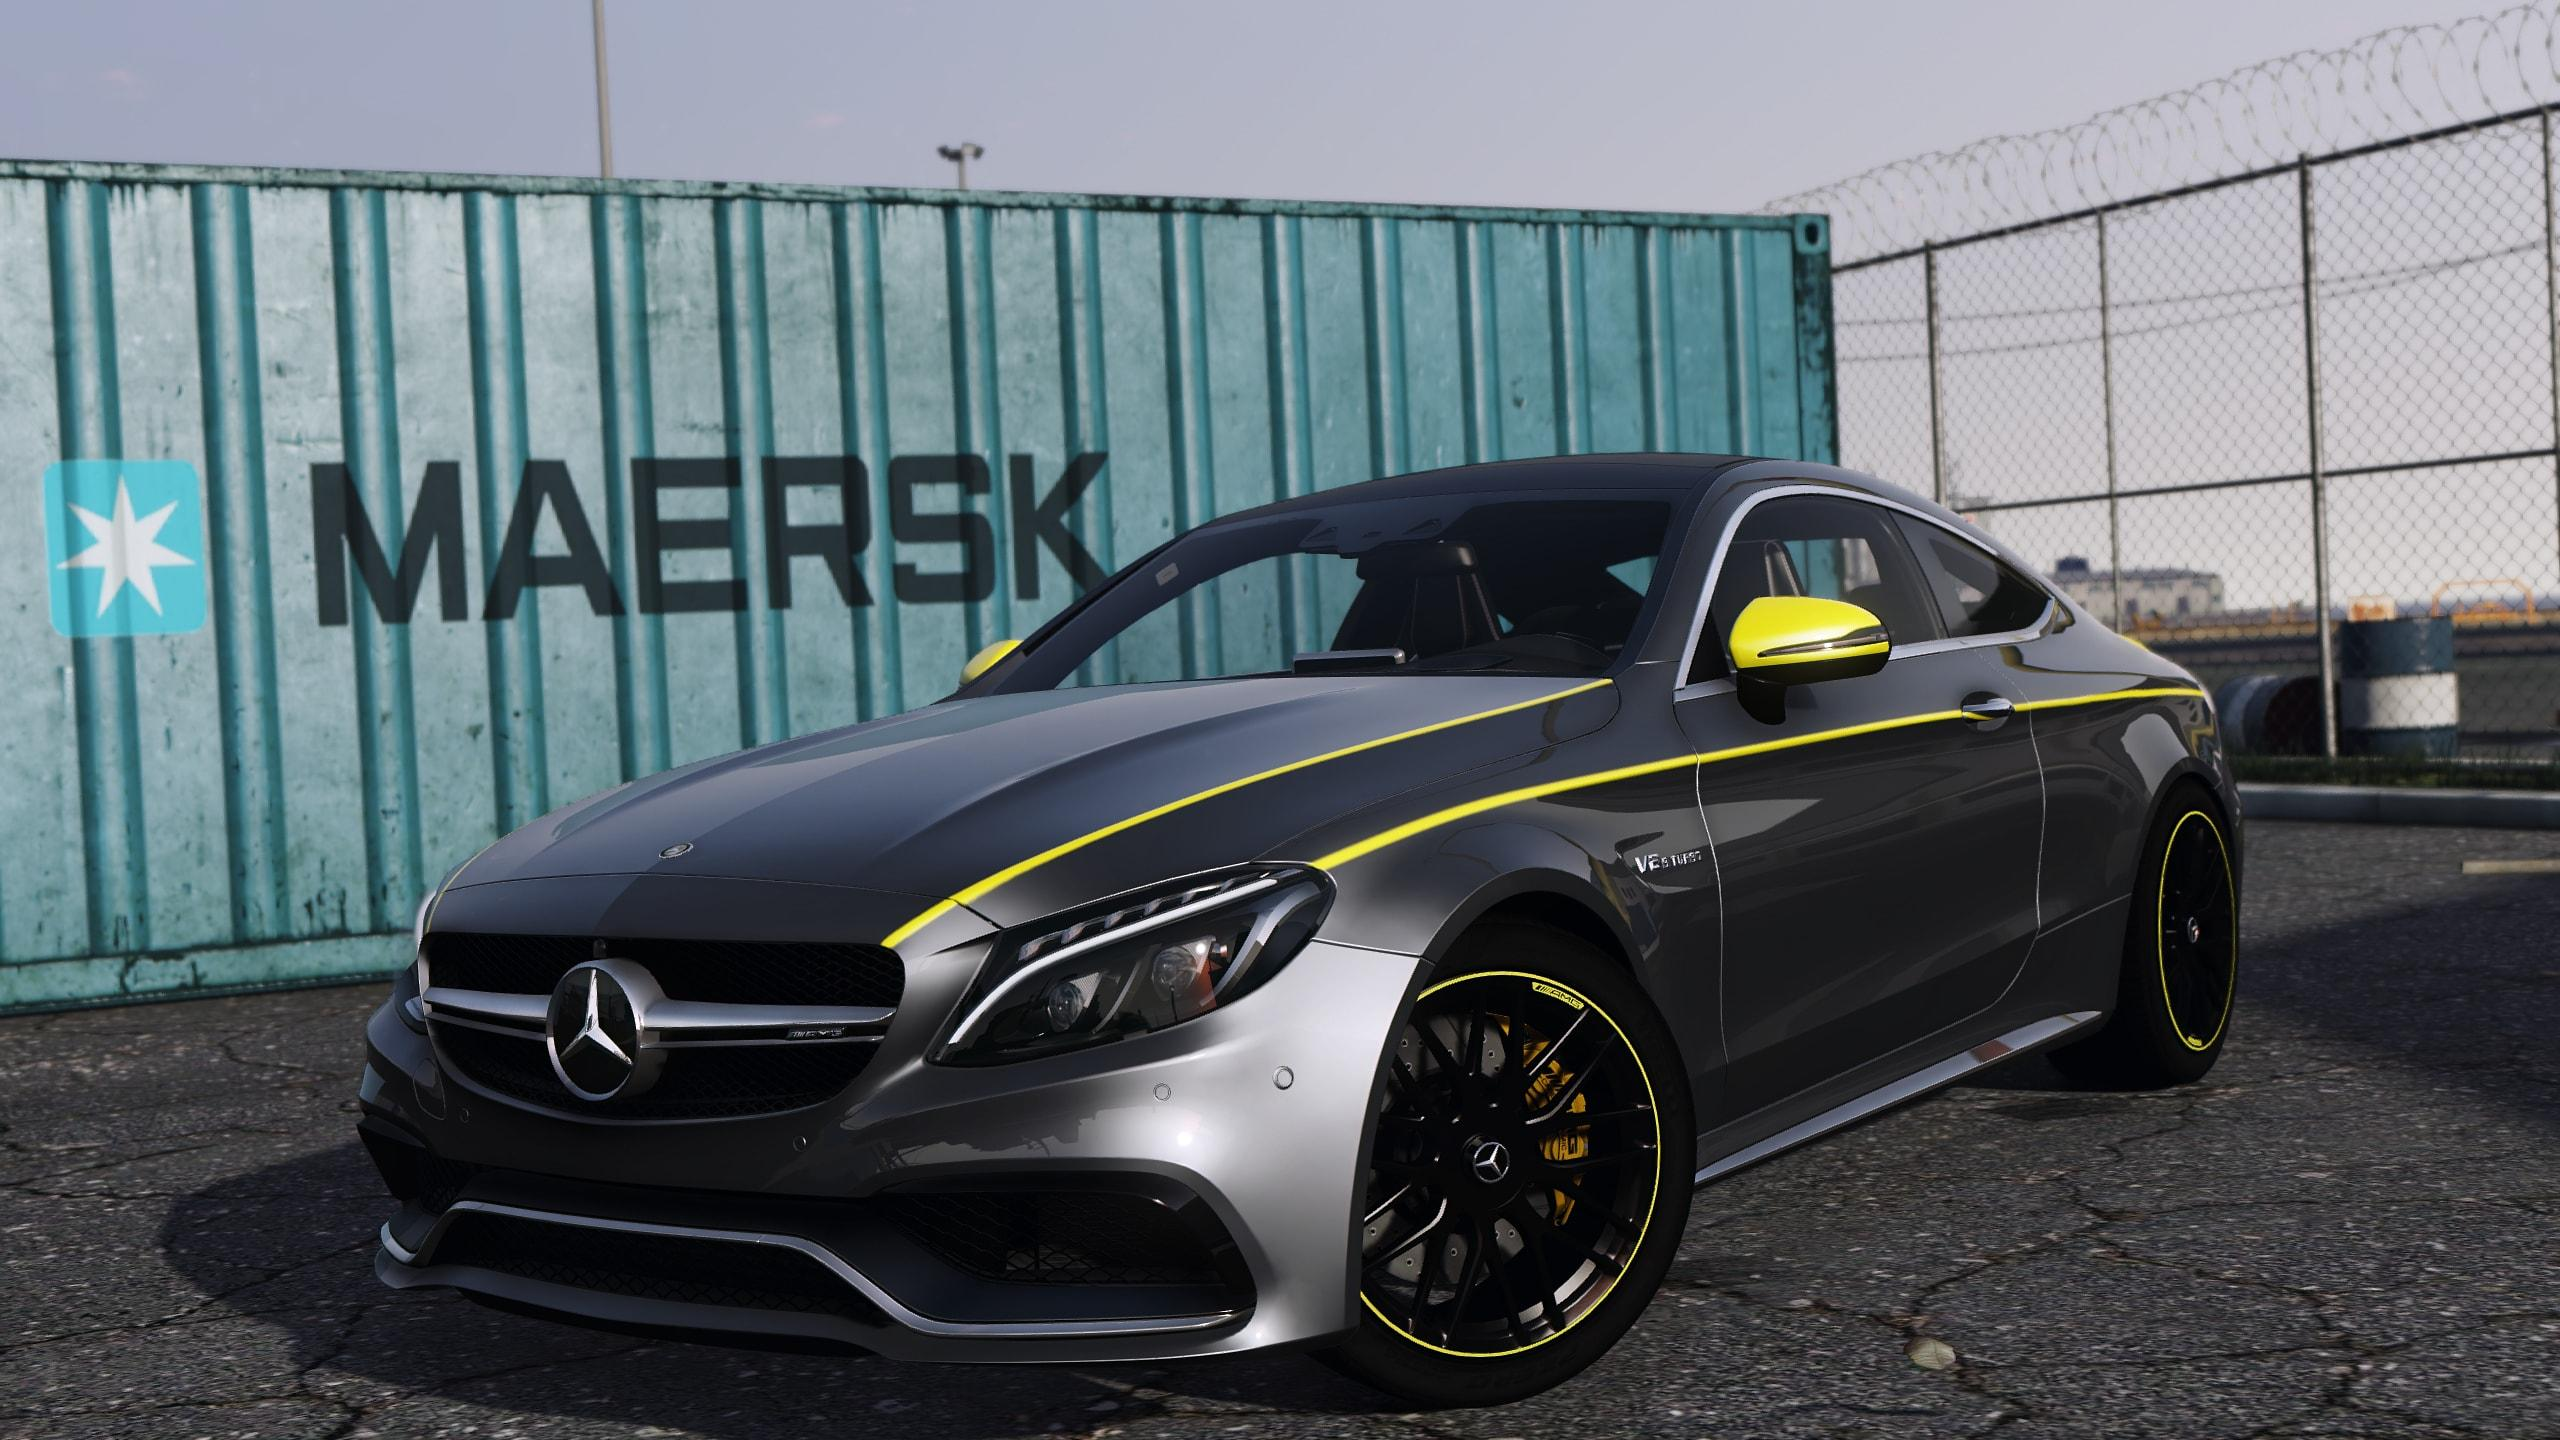 Mercedes Benz C63s Stripe Livery 4k Gta5